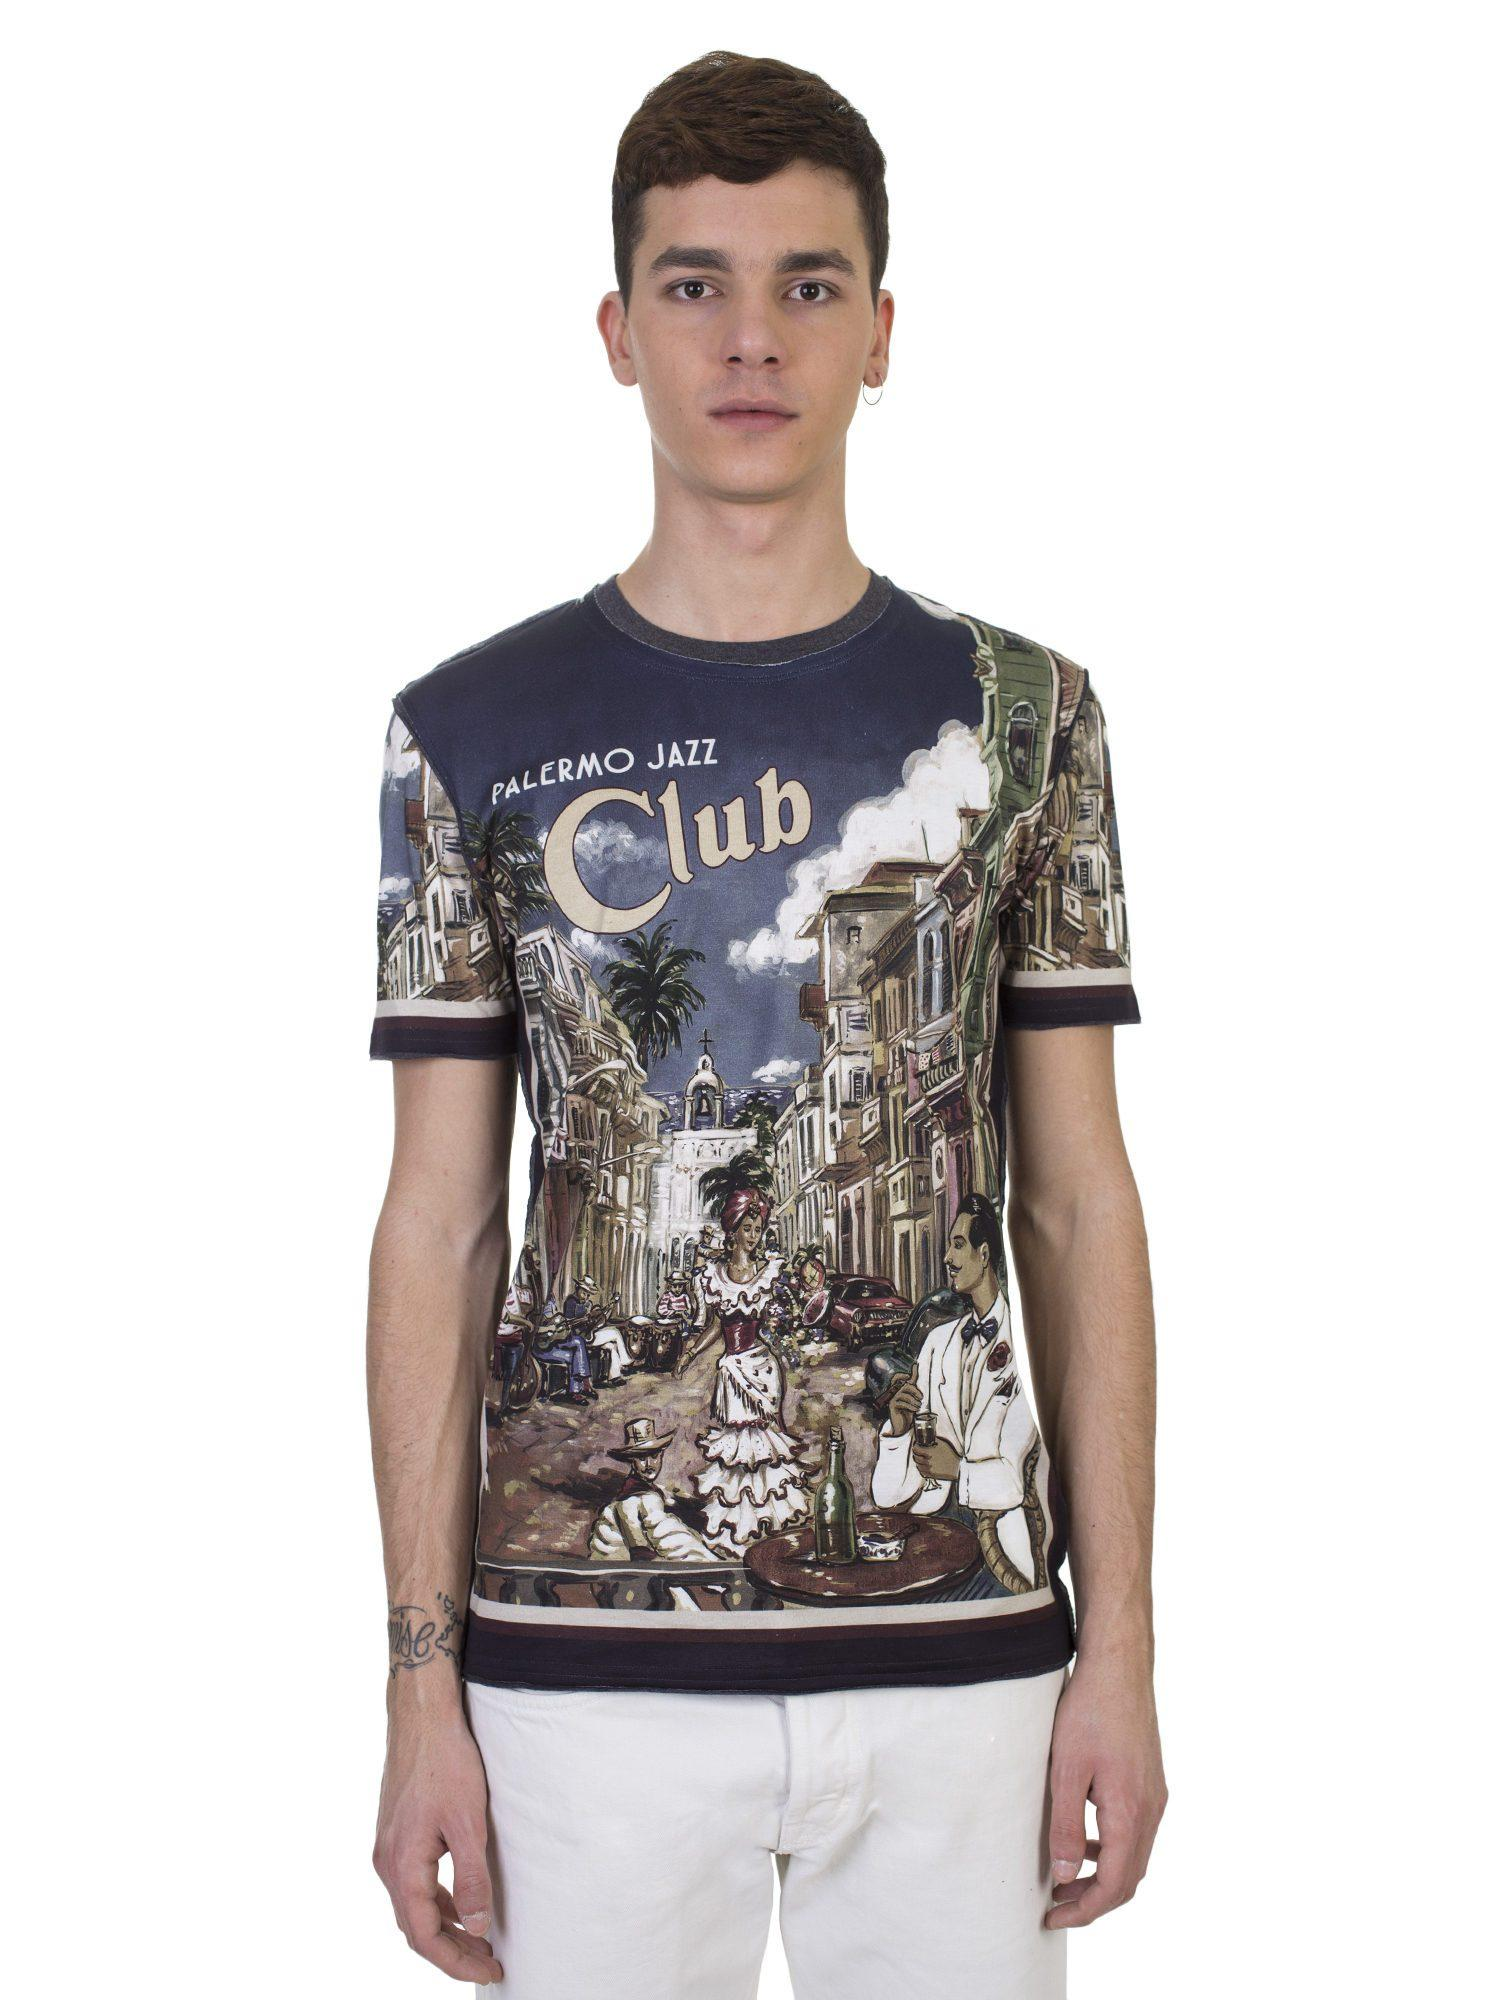 Jazz Palermo Print Cotton T Dolceamp; Shirt Blue In Club Gabbana rxWeodCB